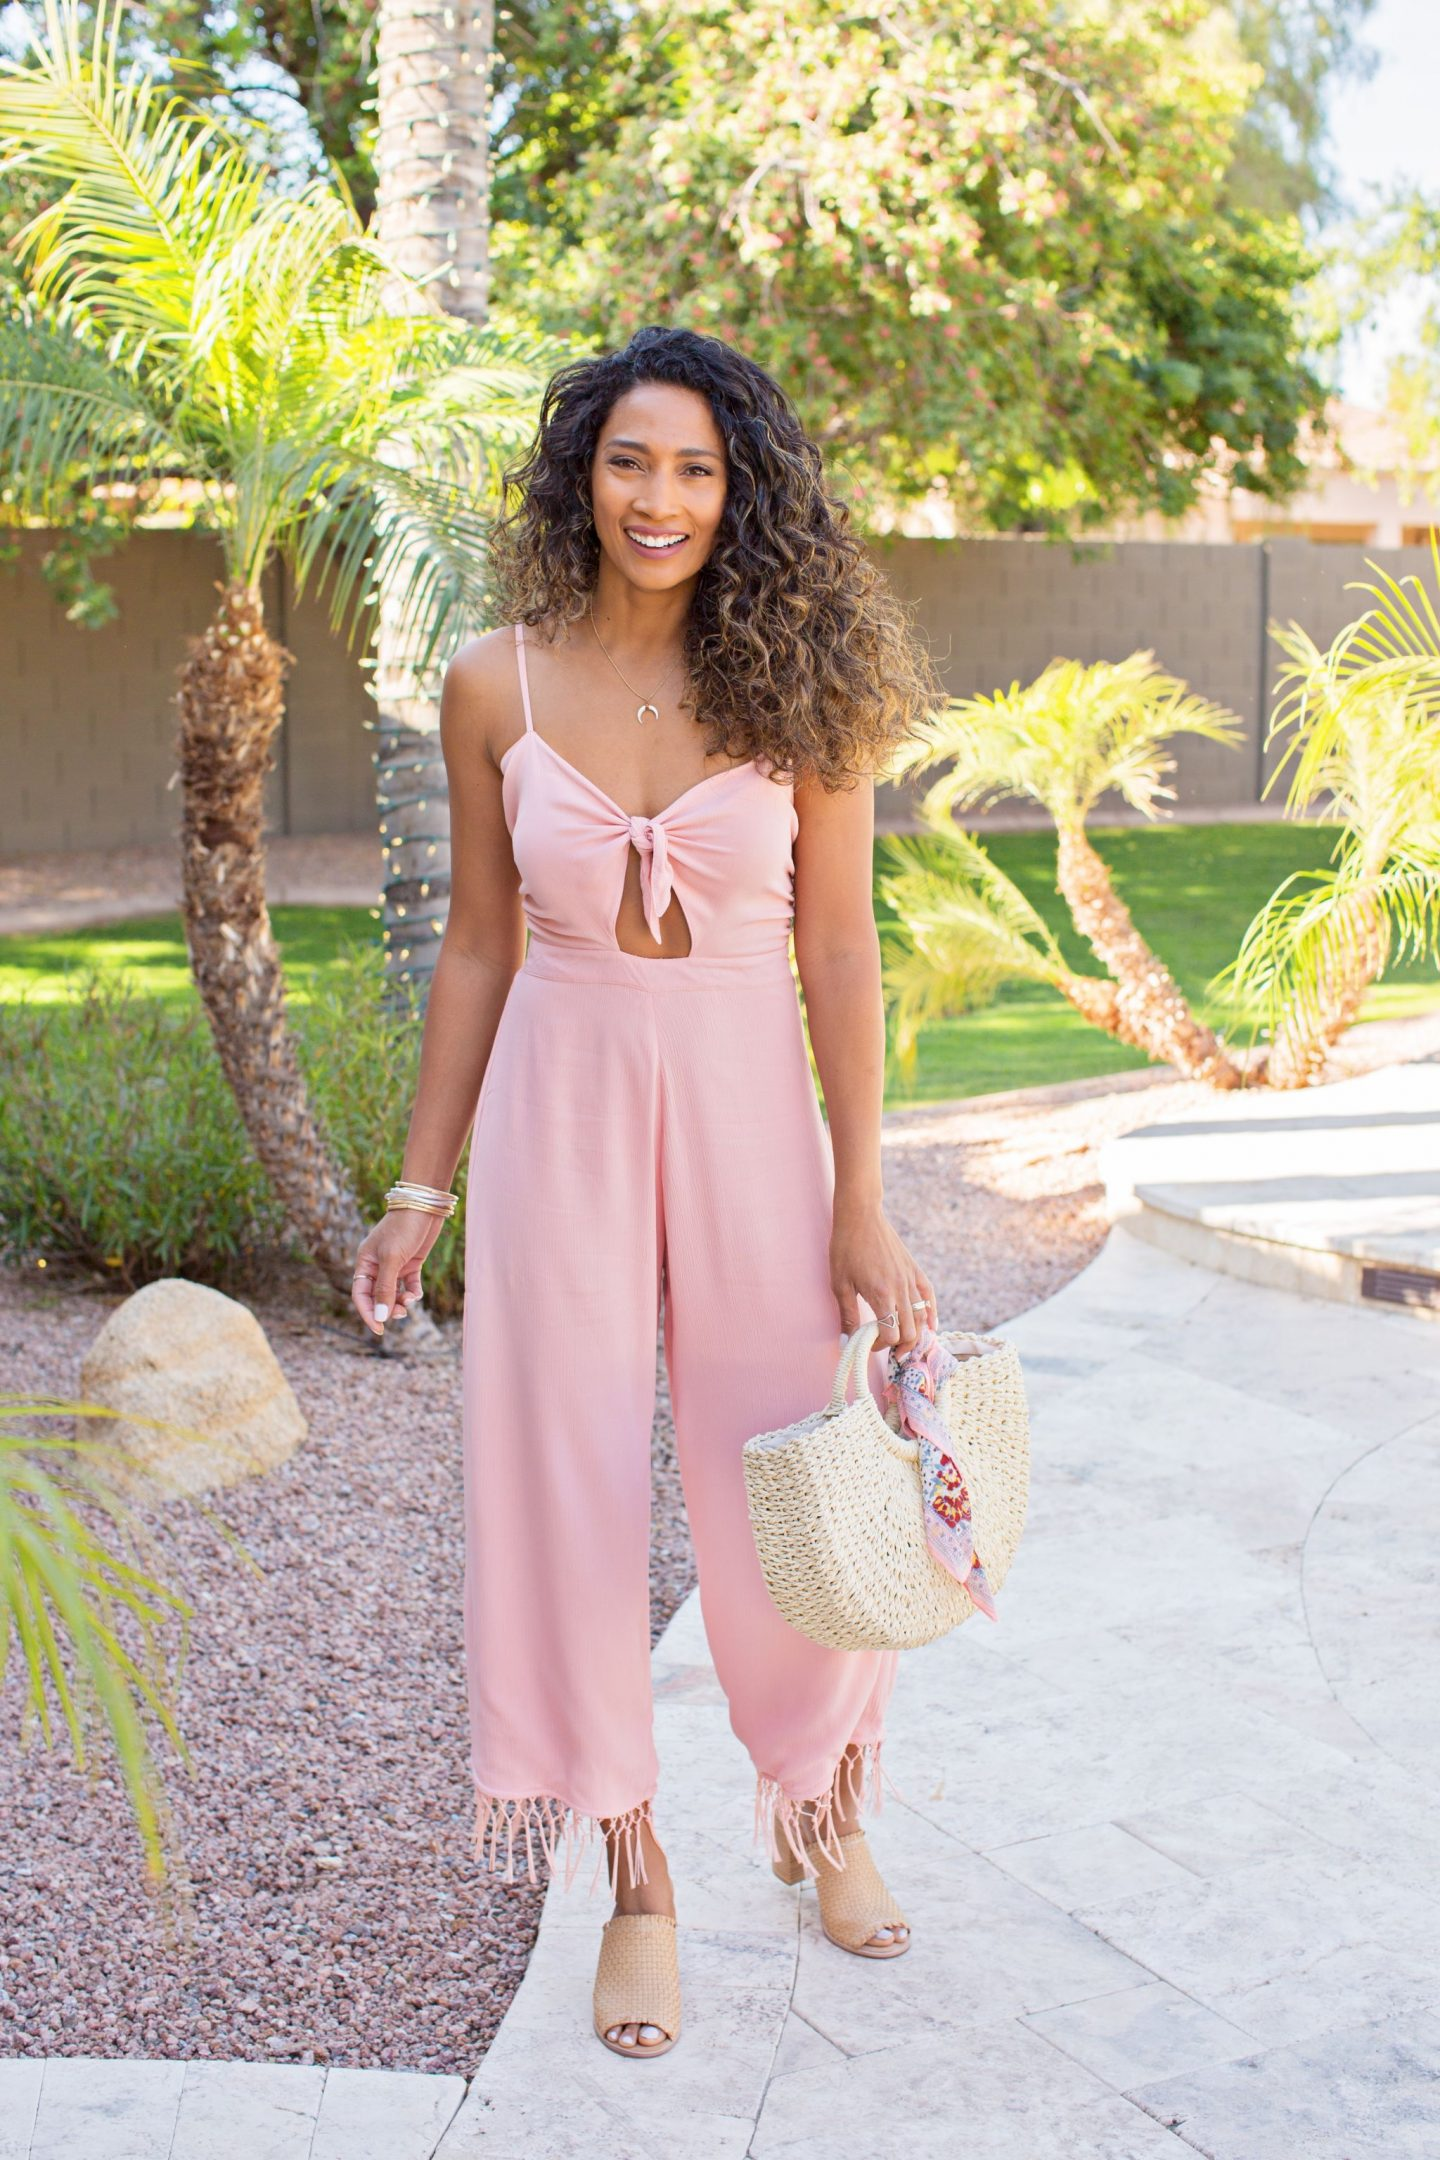 JUMPSUIT, SPRING STYLE, PINK JUMPER, SUMMER LOOKS